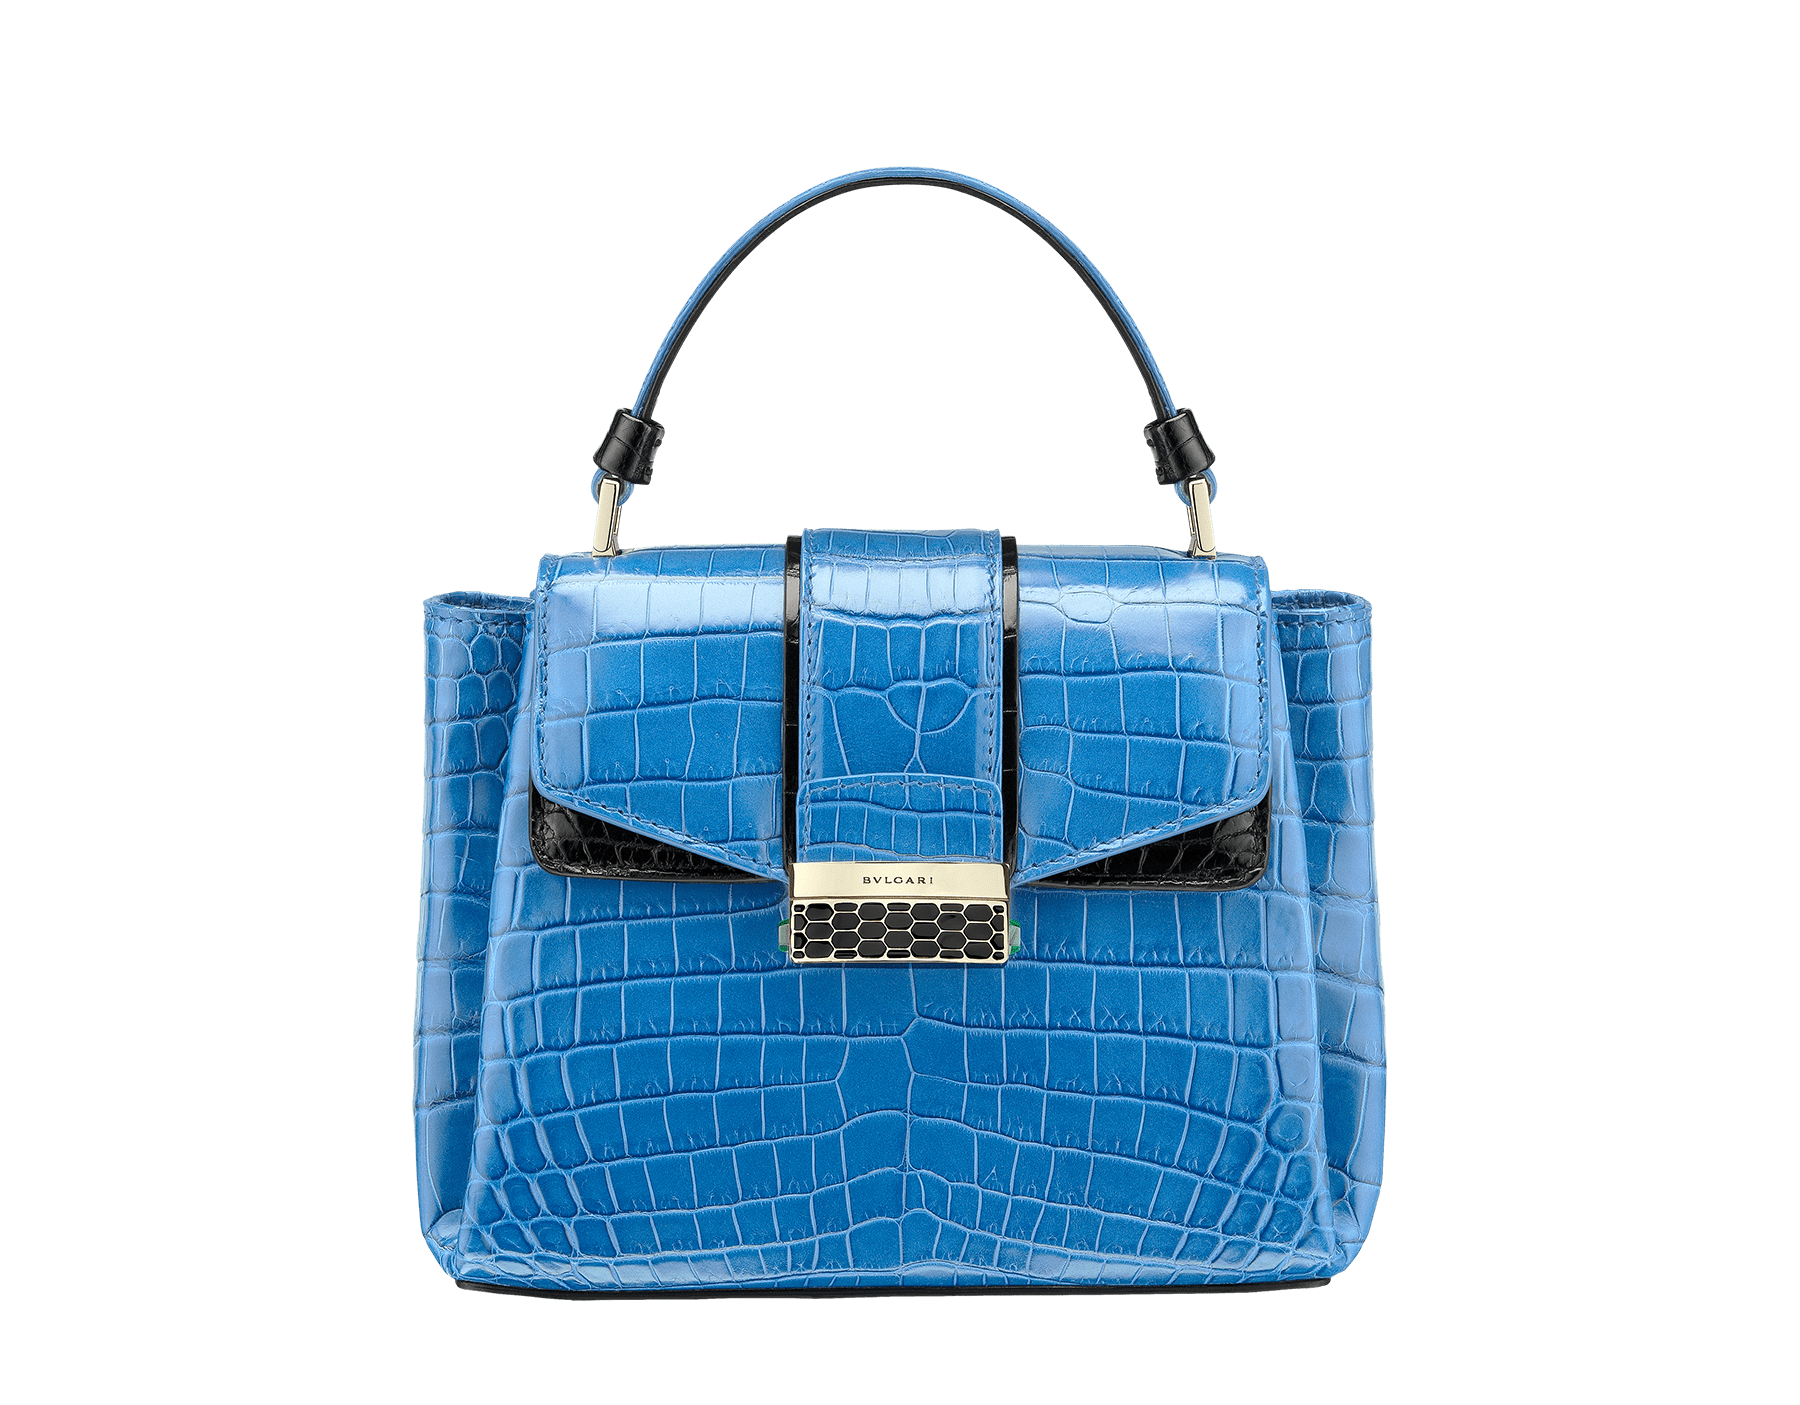 Top handle bag Serpenti Viper in cloud topaz and black shiny crocodile skin. 282924 image 1